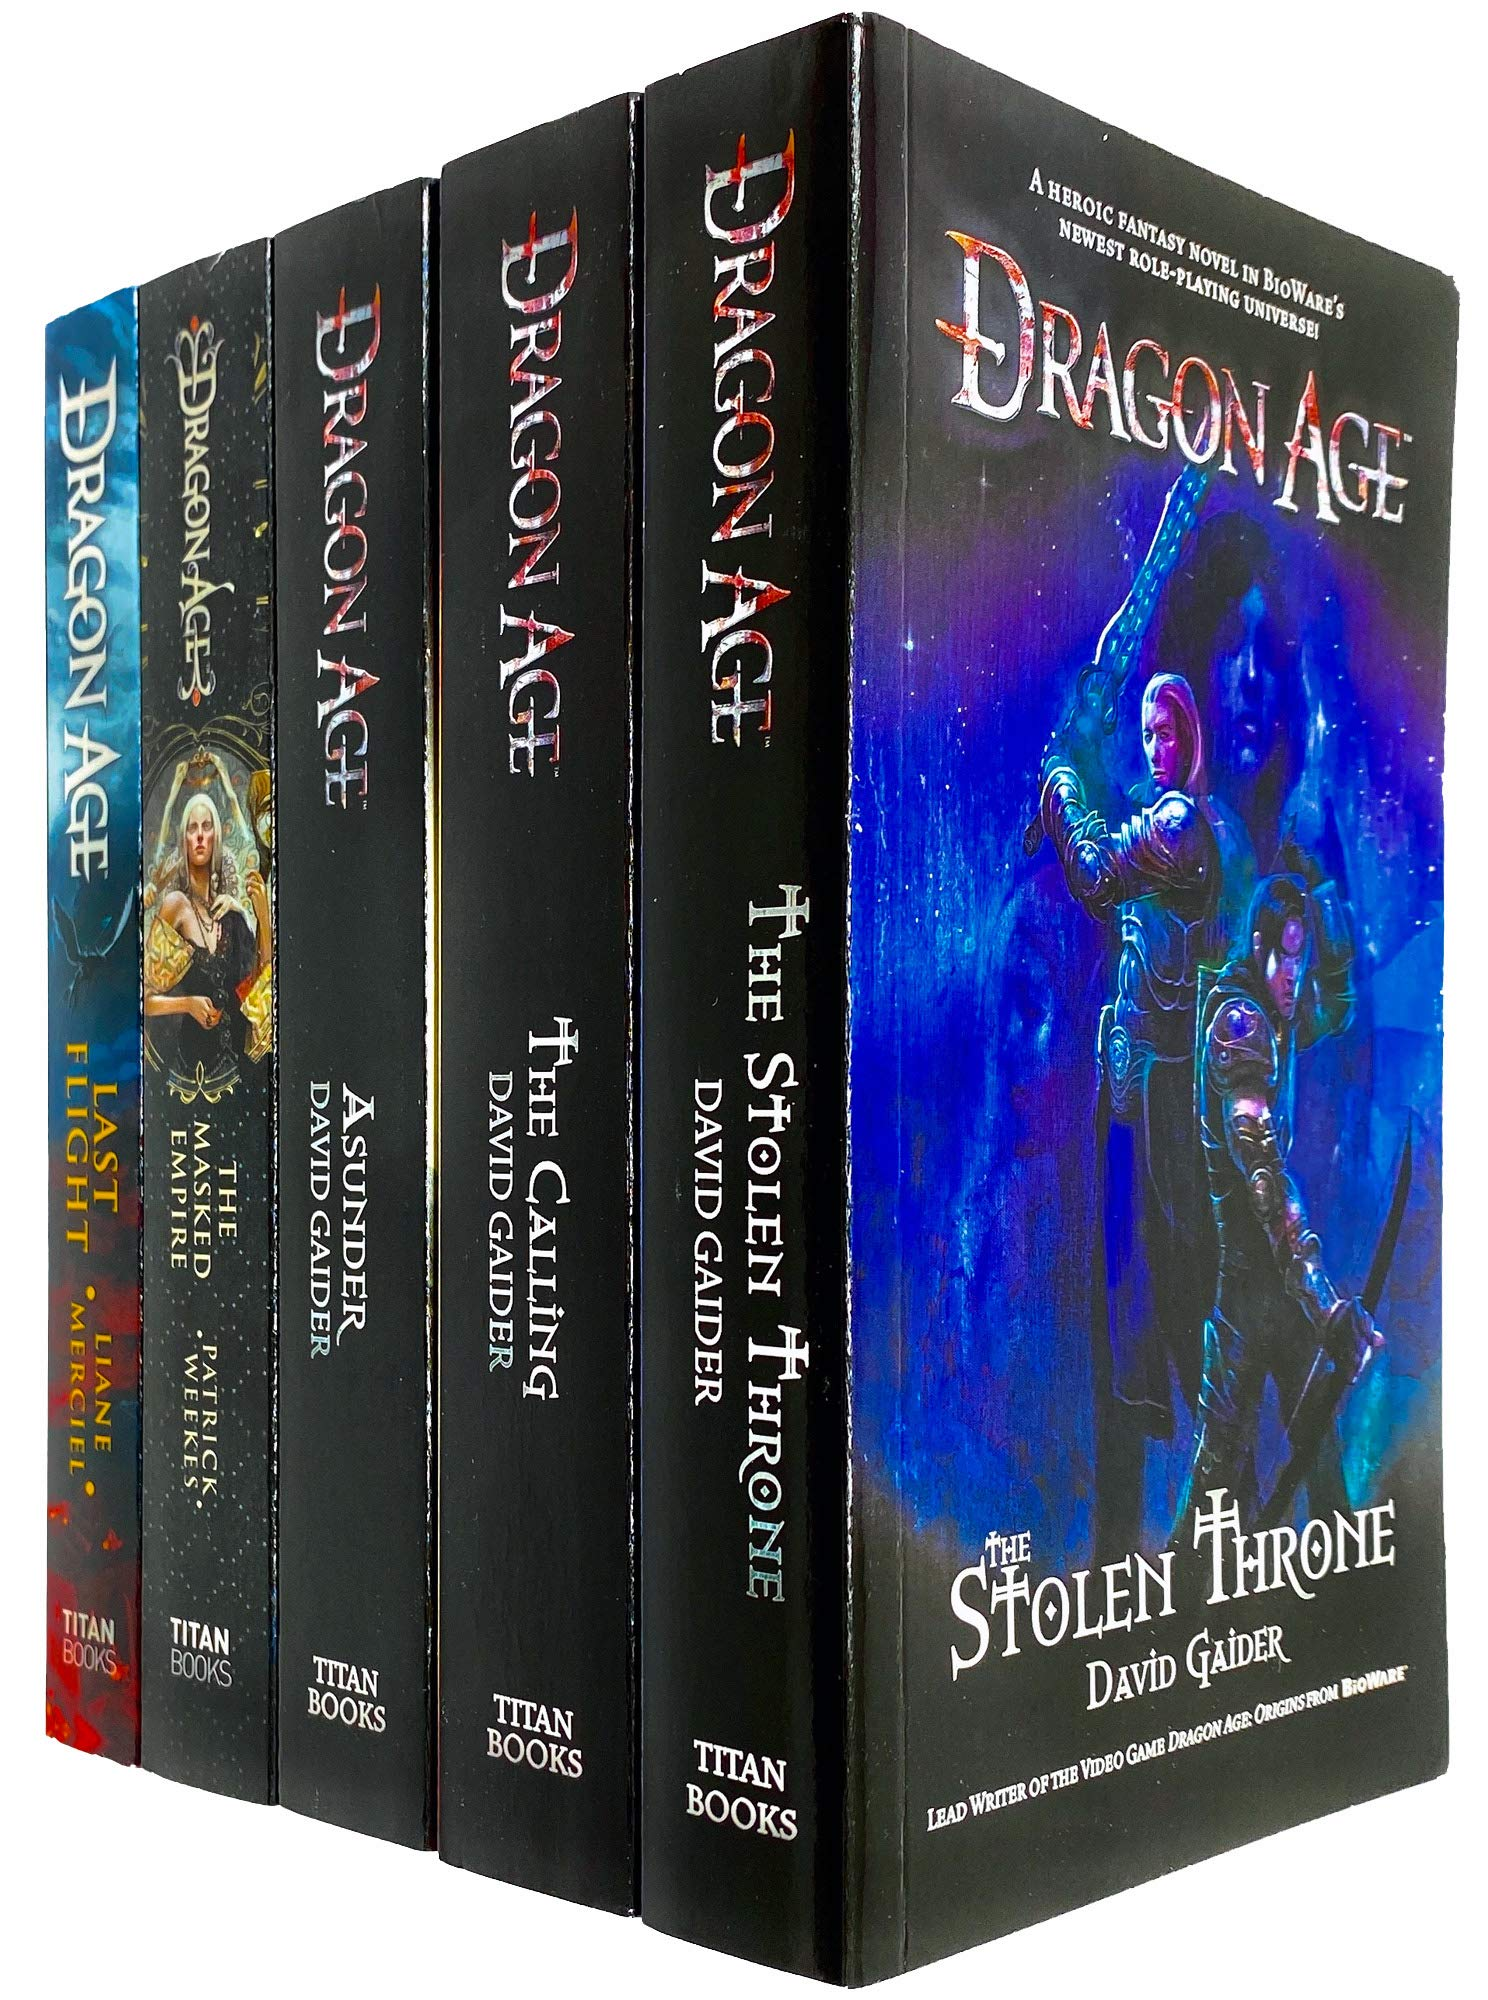 Dragon Age 5 Books Series Collection Set by David Gaider